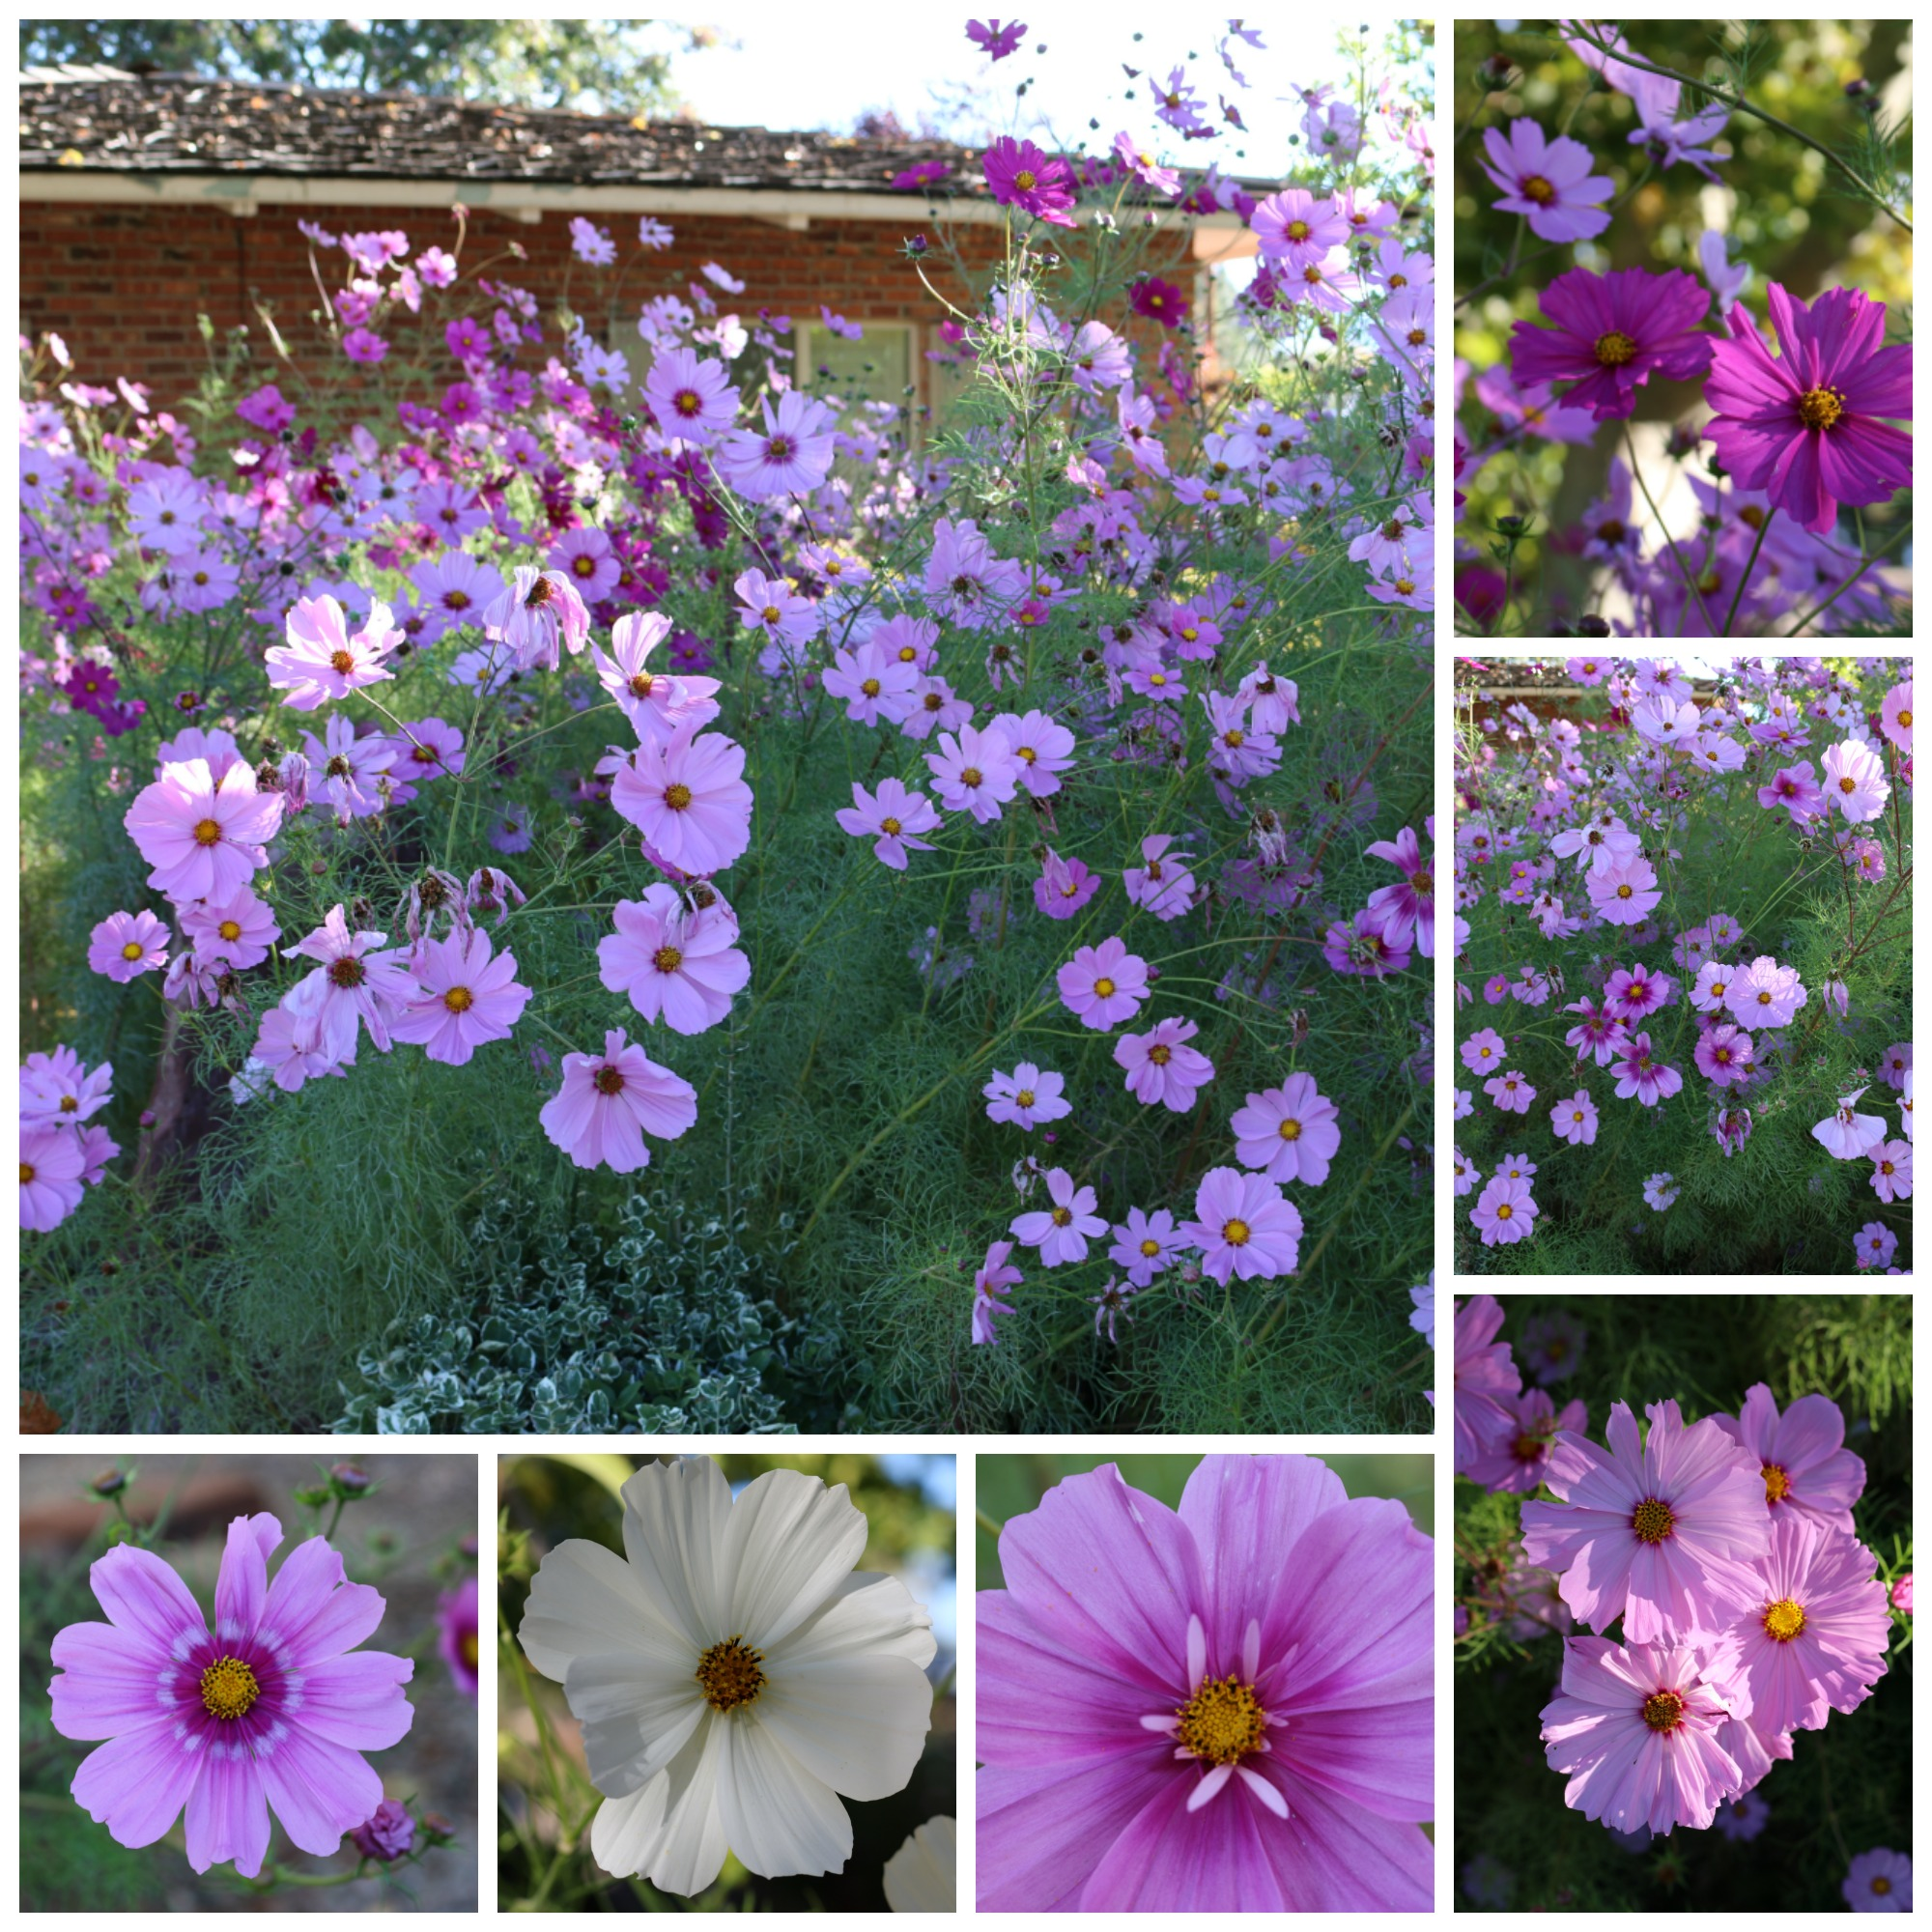 My cosmos are the most beautiful I have ever seen. I planted them in remembrance of my late Mother Katherine, who loved these flowers. They are nearly 7 feet tall. Spectacular!